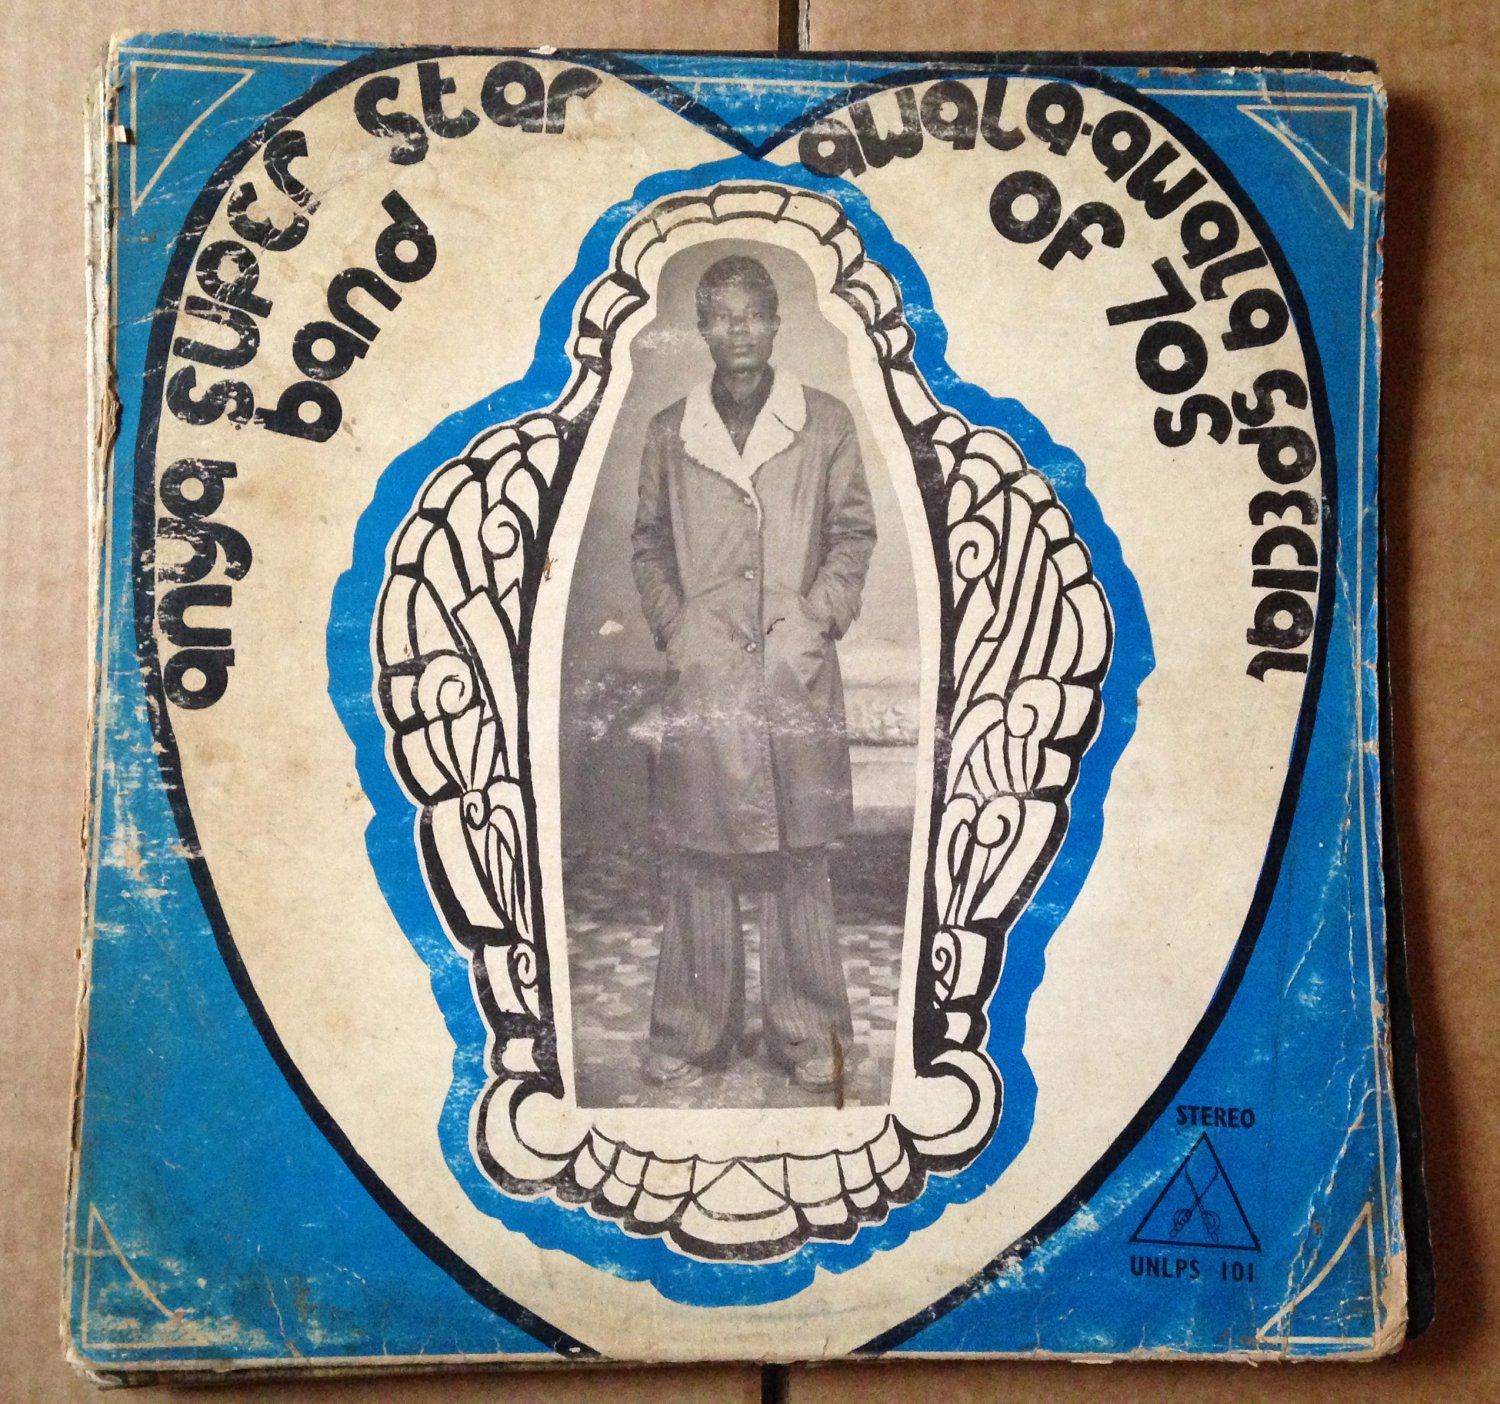 ANYA SUPER STAR BAND LP awala awala special of 70s NIGERIA mp3 LISTEN